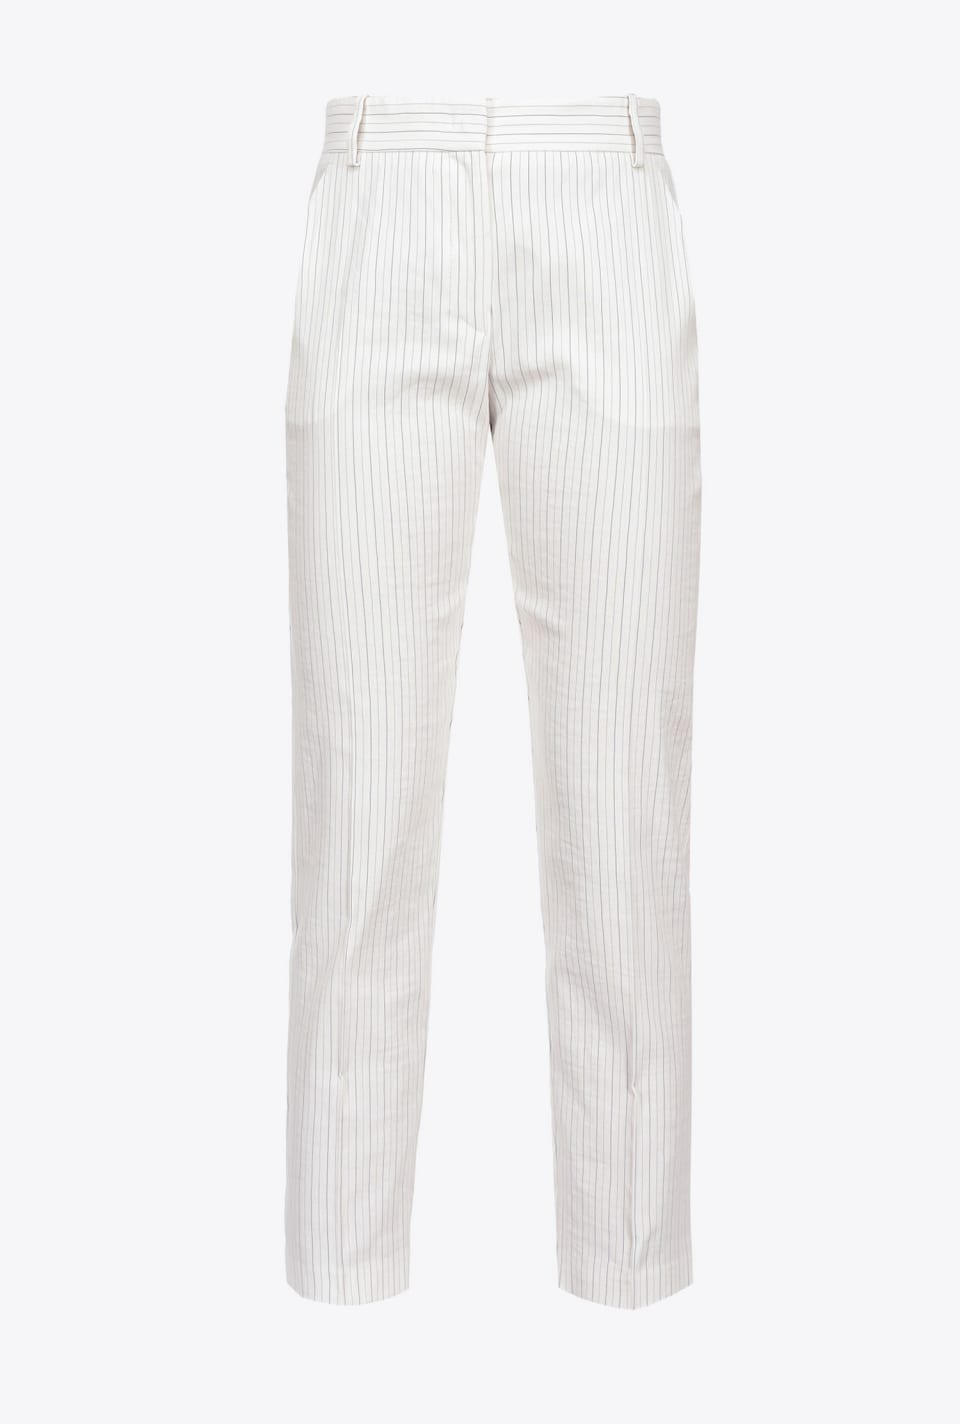 Pinstripe linen cigarette-fit trousers - Pinko